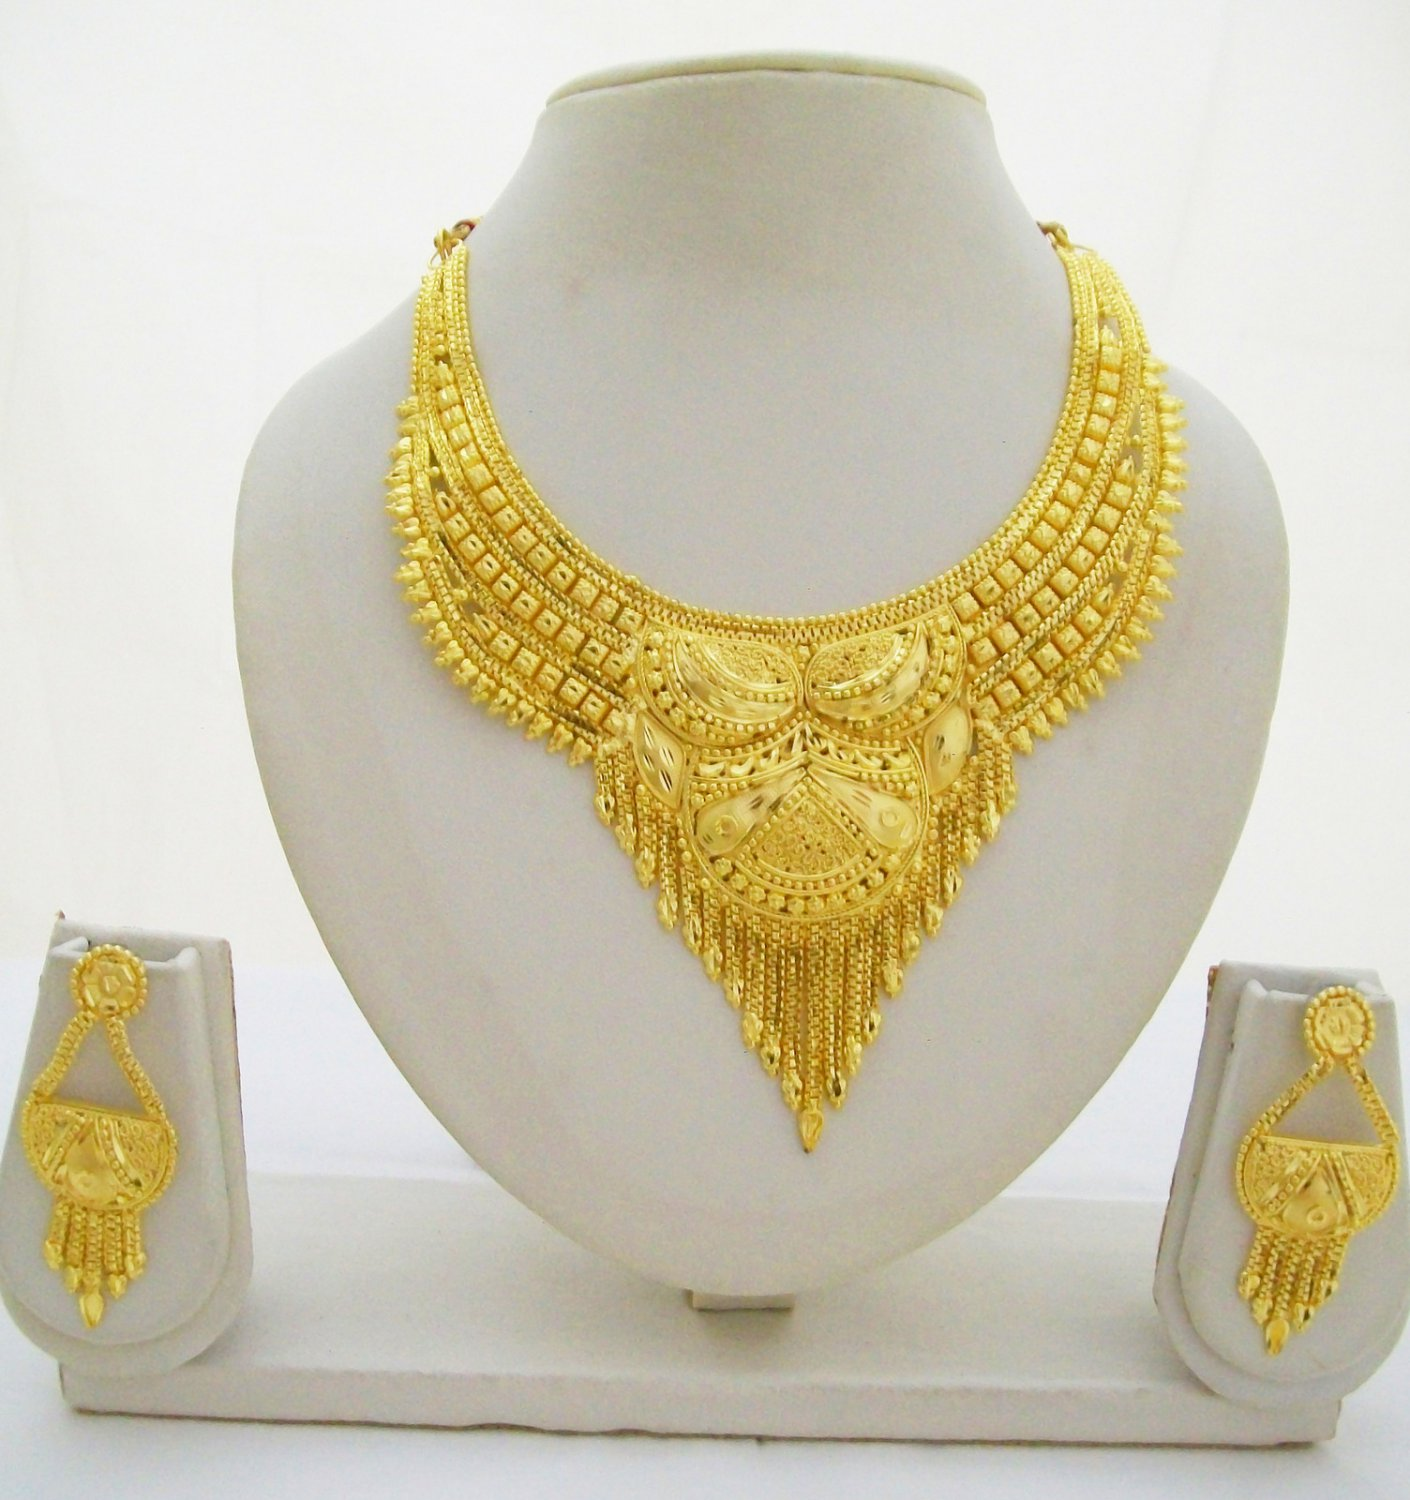 Indian Gold Plated Choker Necklace Traditional Bridal: Indian Gold Plated Choker Necklace Earring Set Traditional